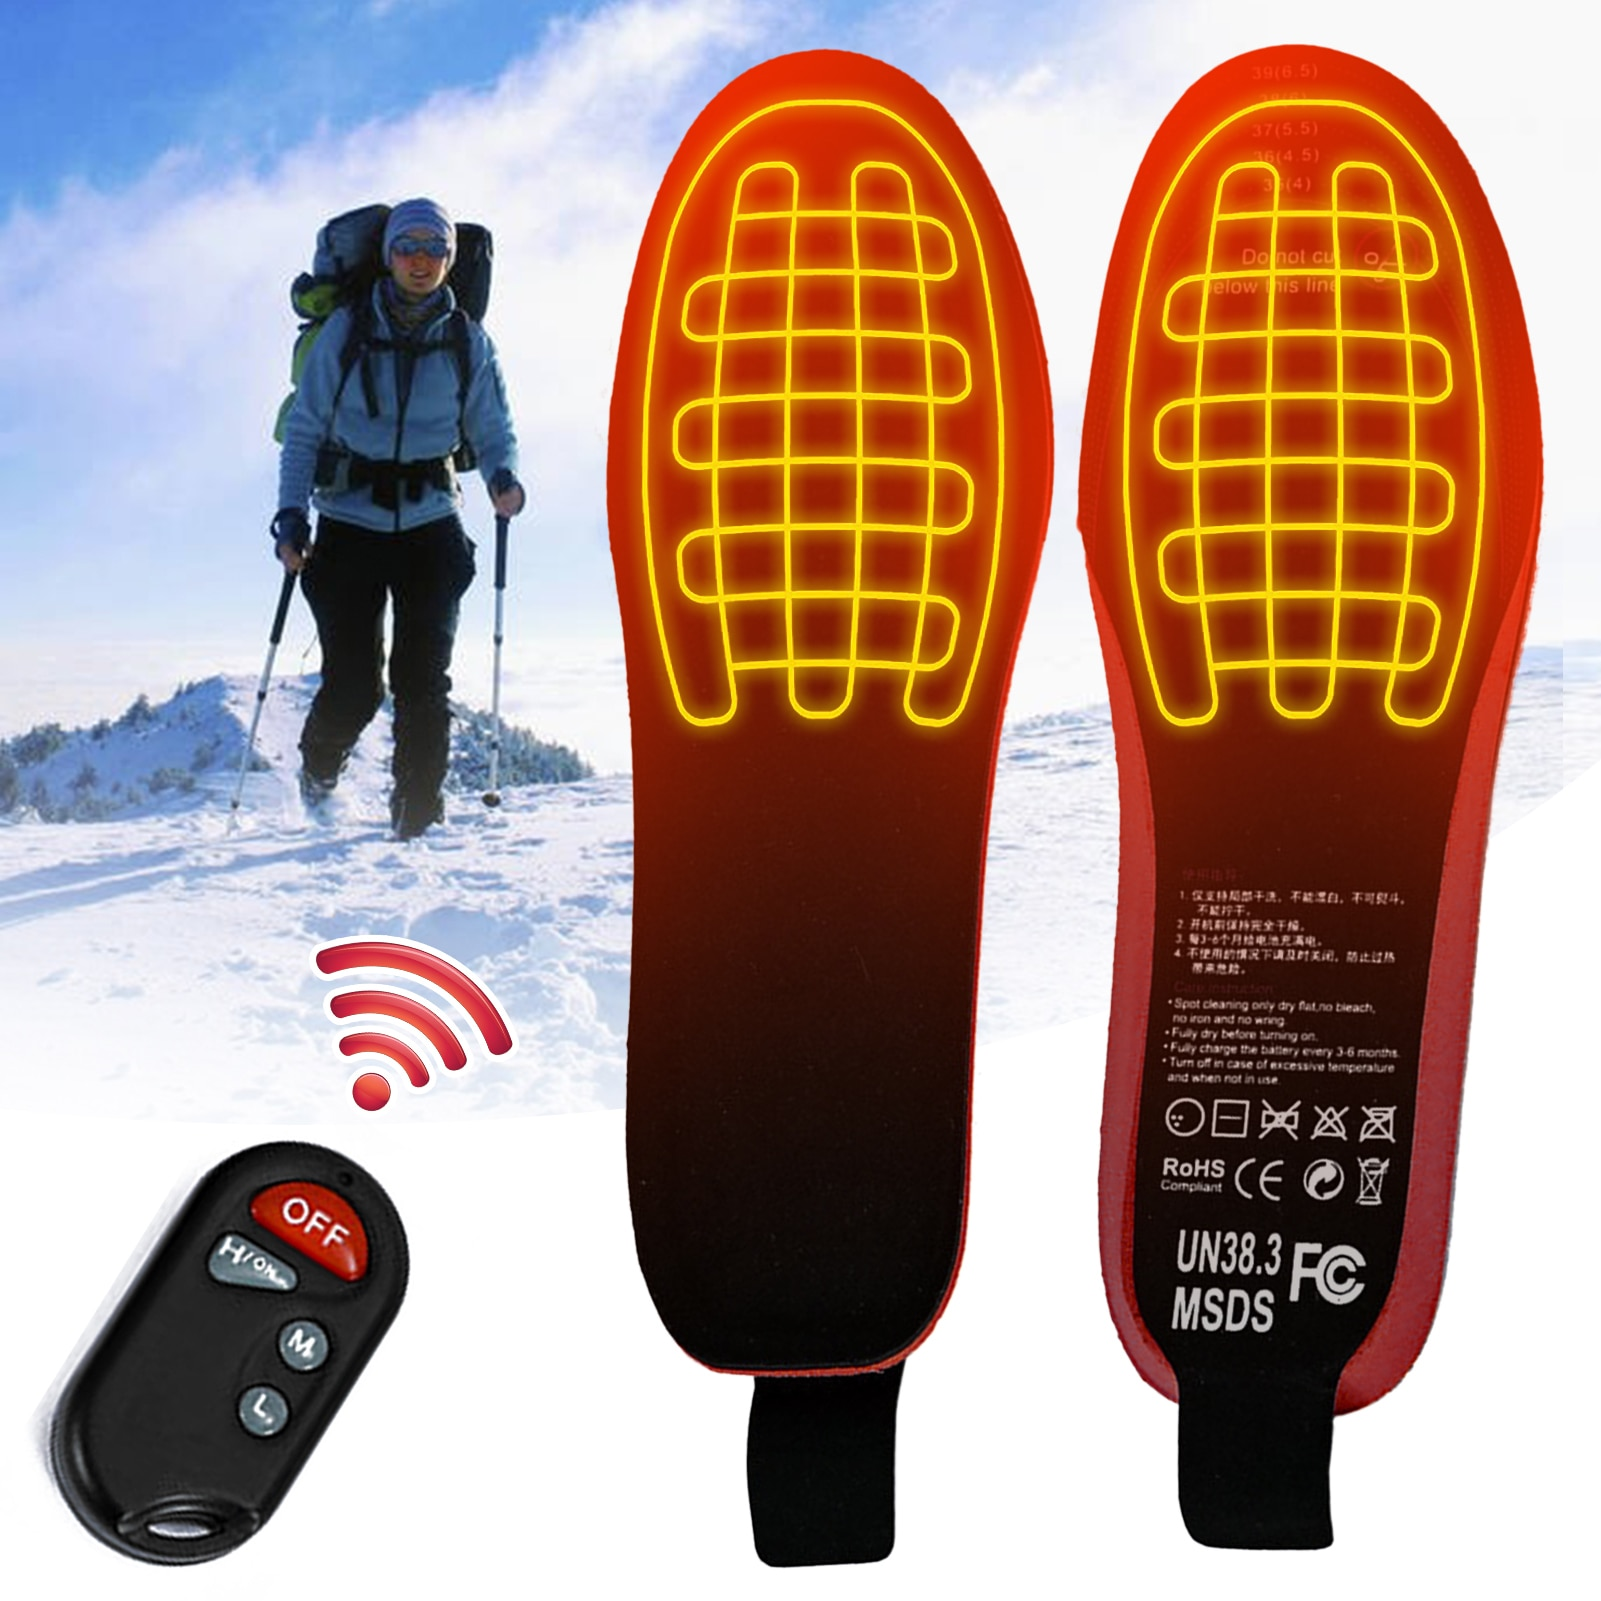 USB Heated Shoe Insoles Remote Control 3.7V 2100MA Heating Insoles Rechargeable Electric Heated Insoles Warm Sock Pad Mat